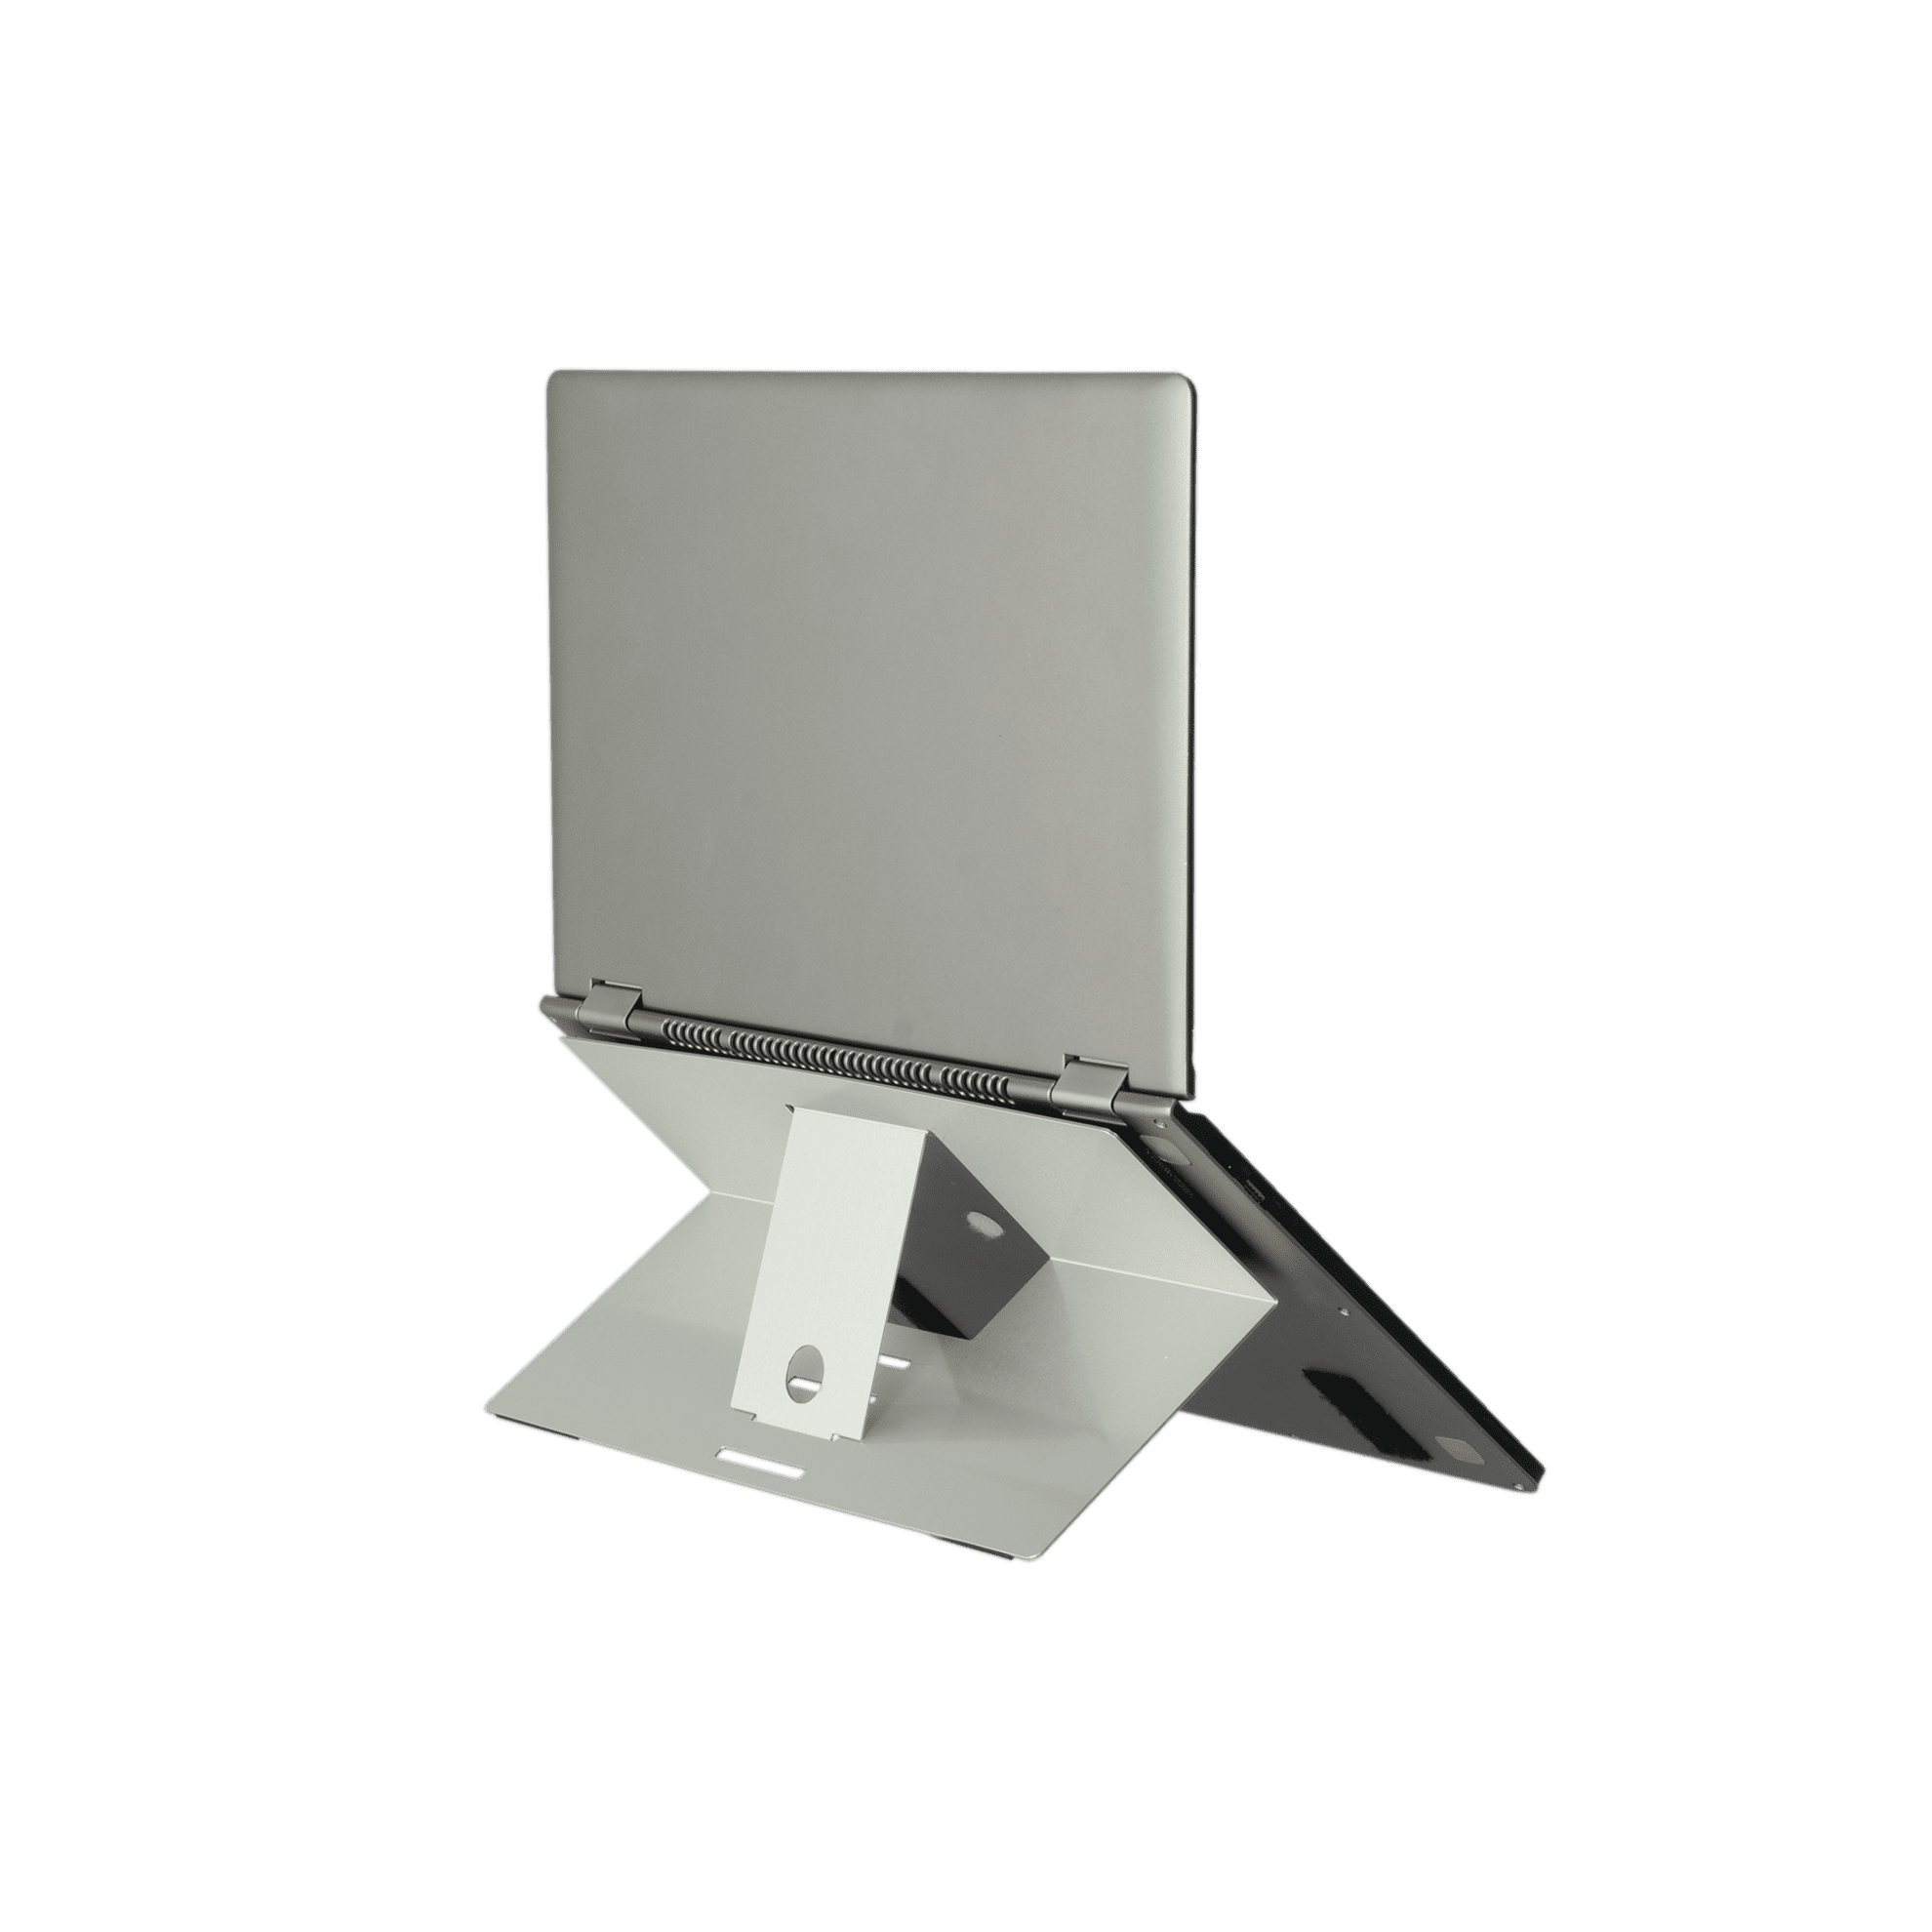 R-Go Riser Attachable Laptopständer, verstellbar, silber - 2